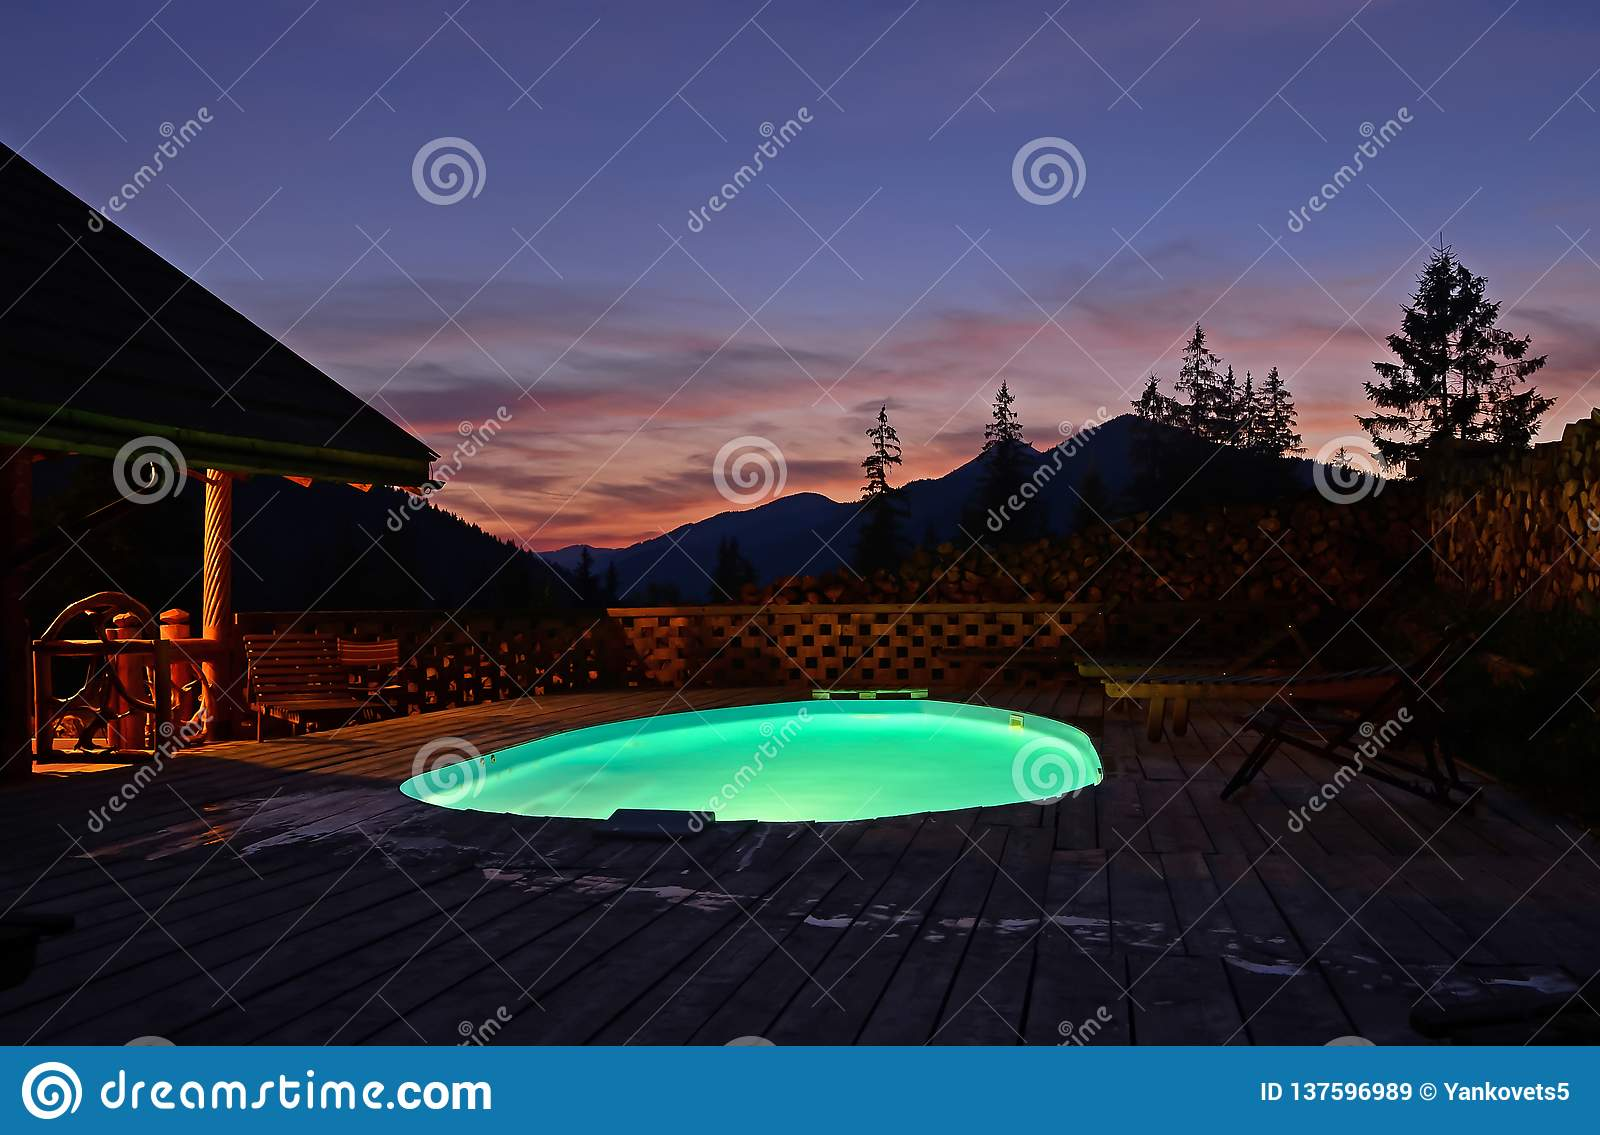 Oval open-air swimming pool high in the mountains against the backdrop of the beautiful summer sunset and mountains. The